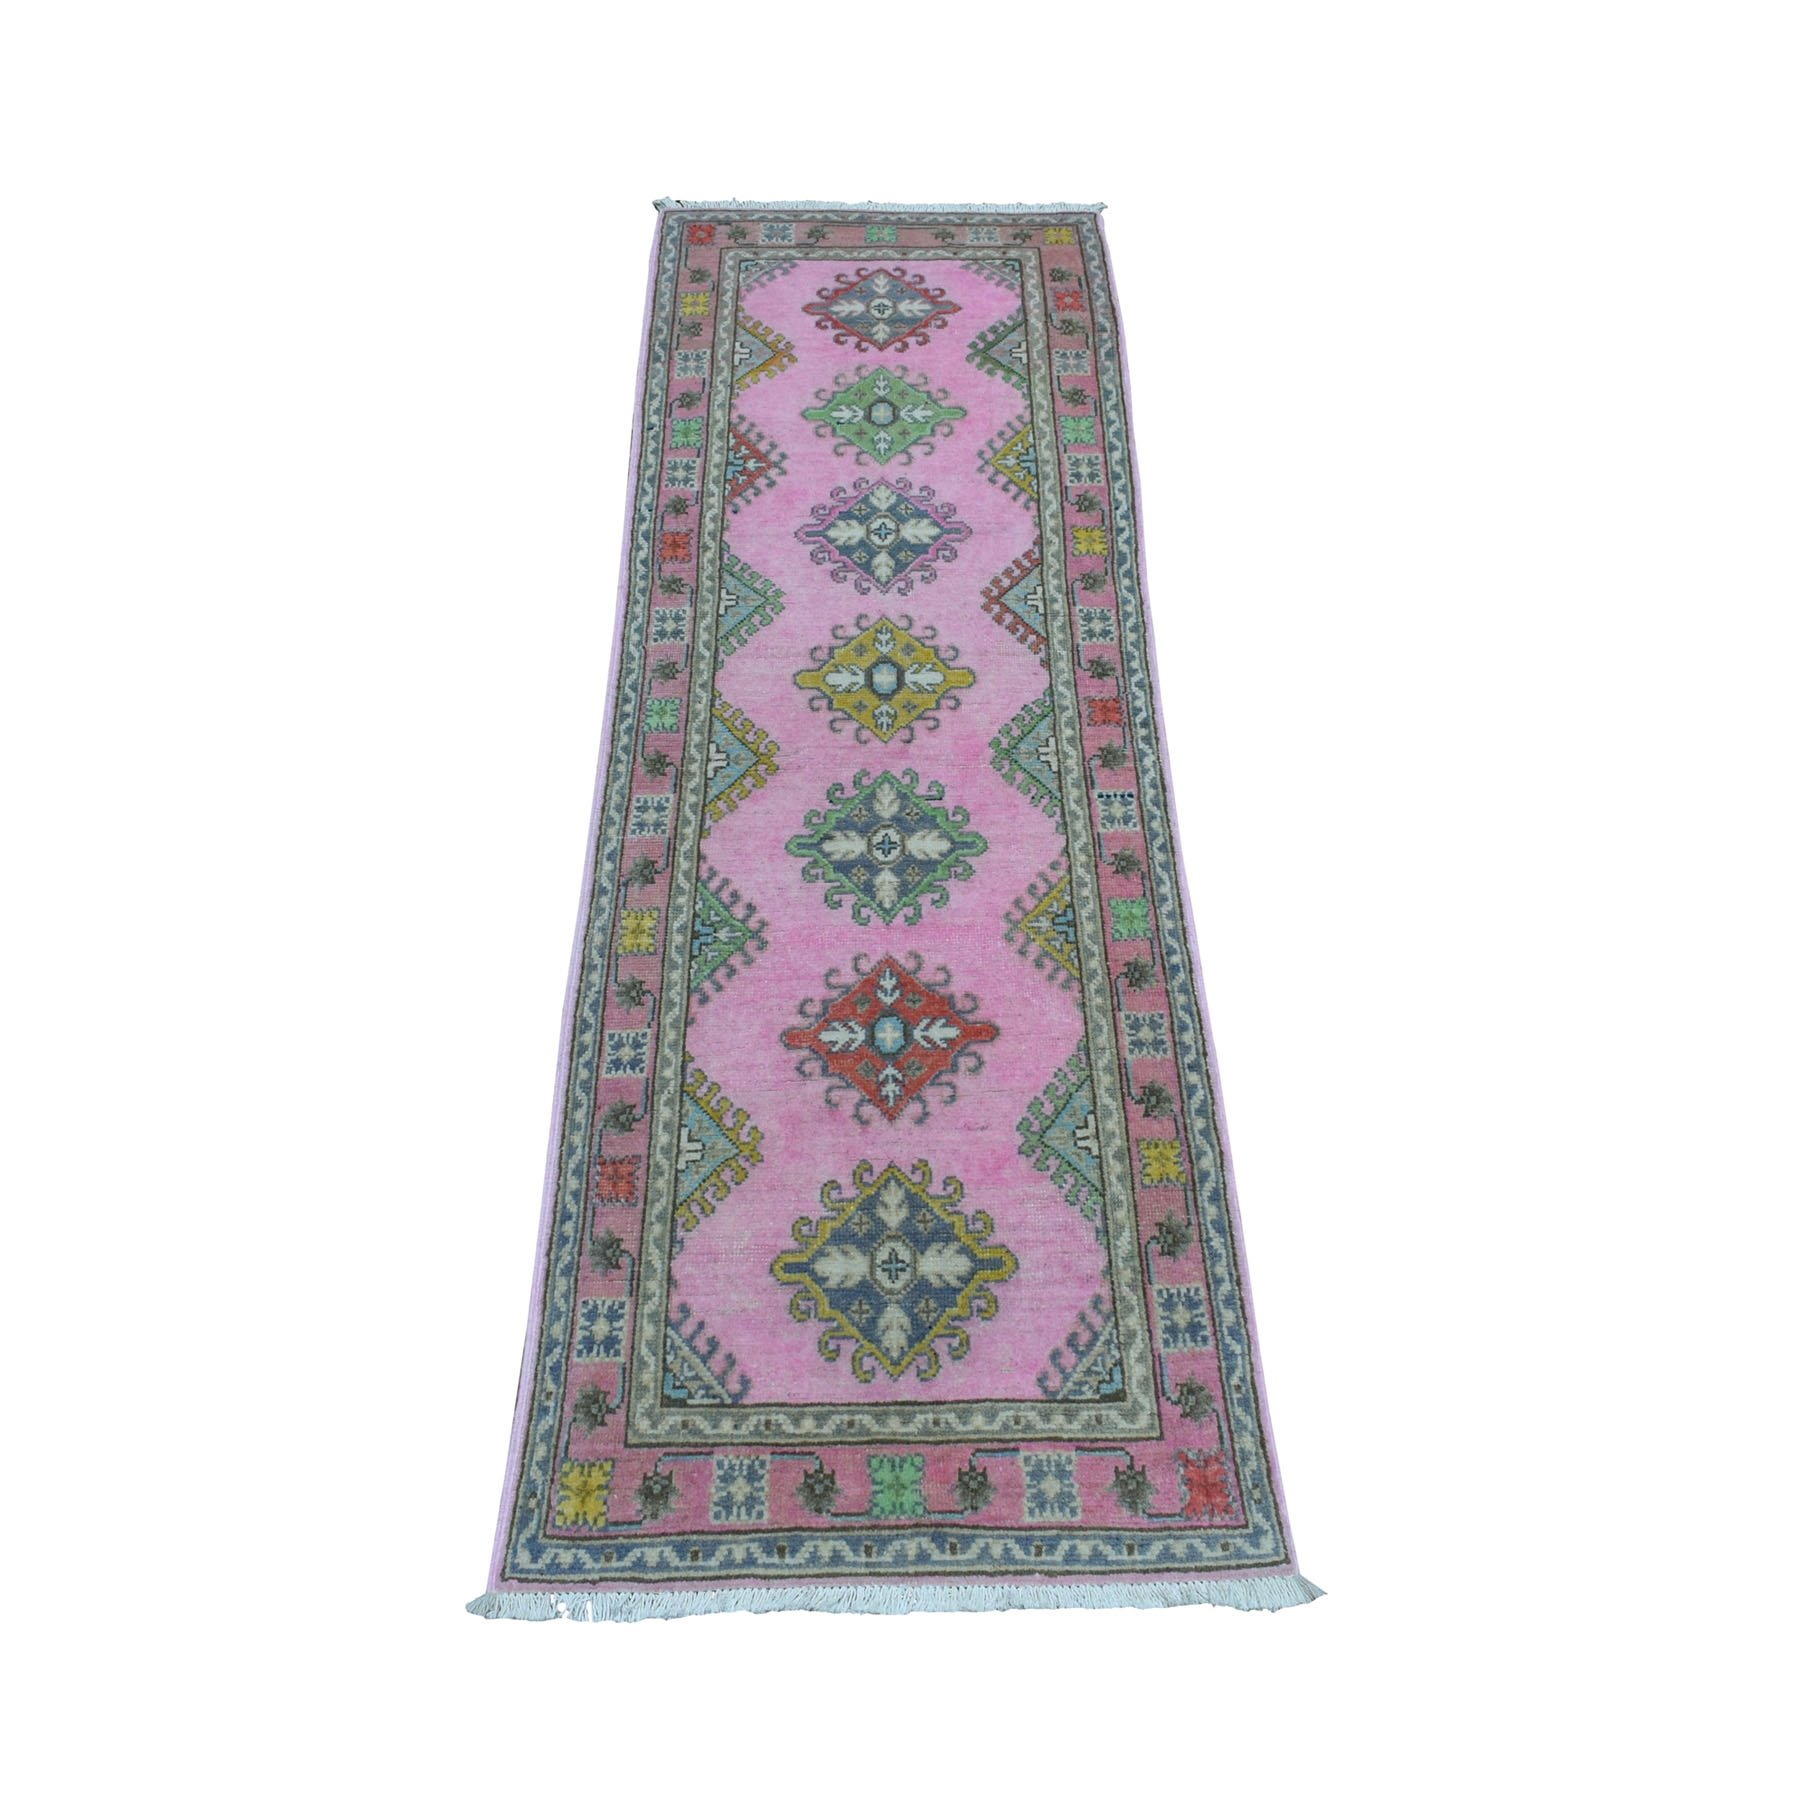 "2'x6'1"" Colorful Pink Fusion Kazak Pure Wool Geometric Design Runner Hand Woven Oriental Rug"